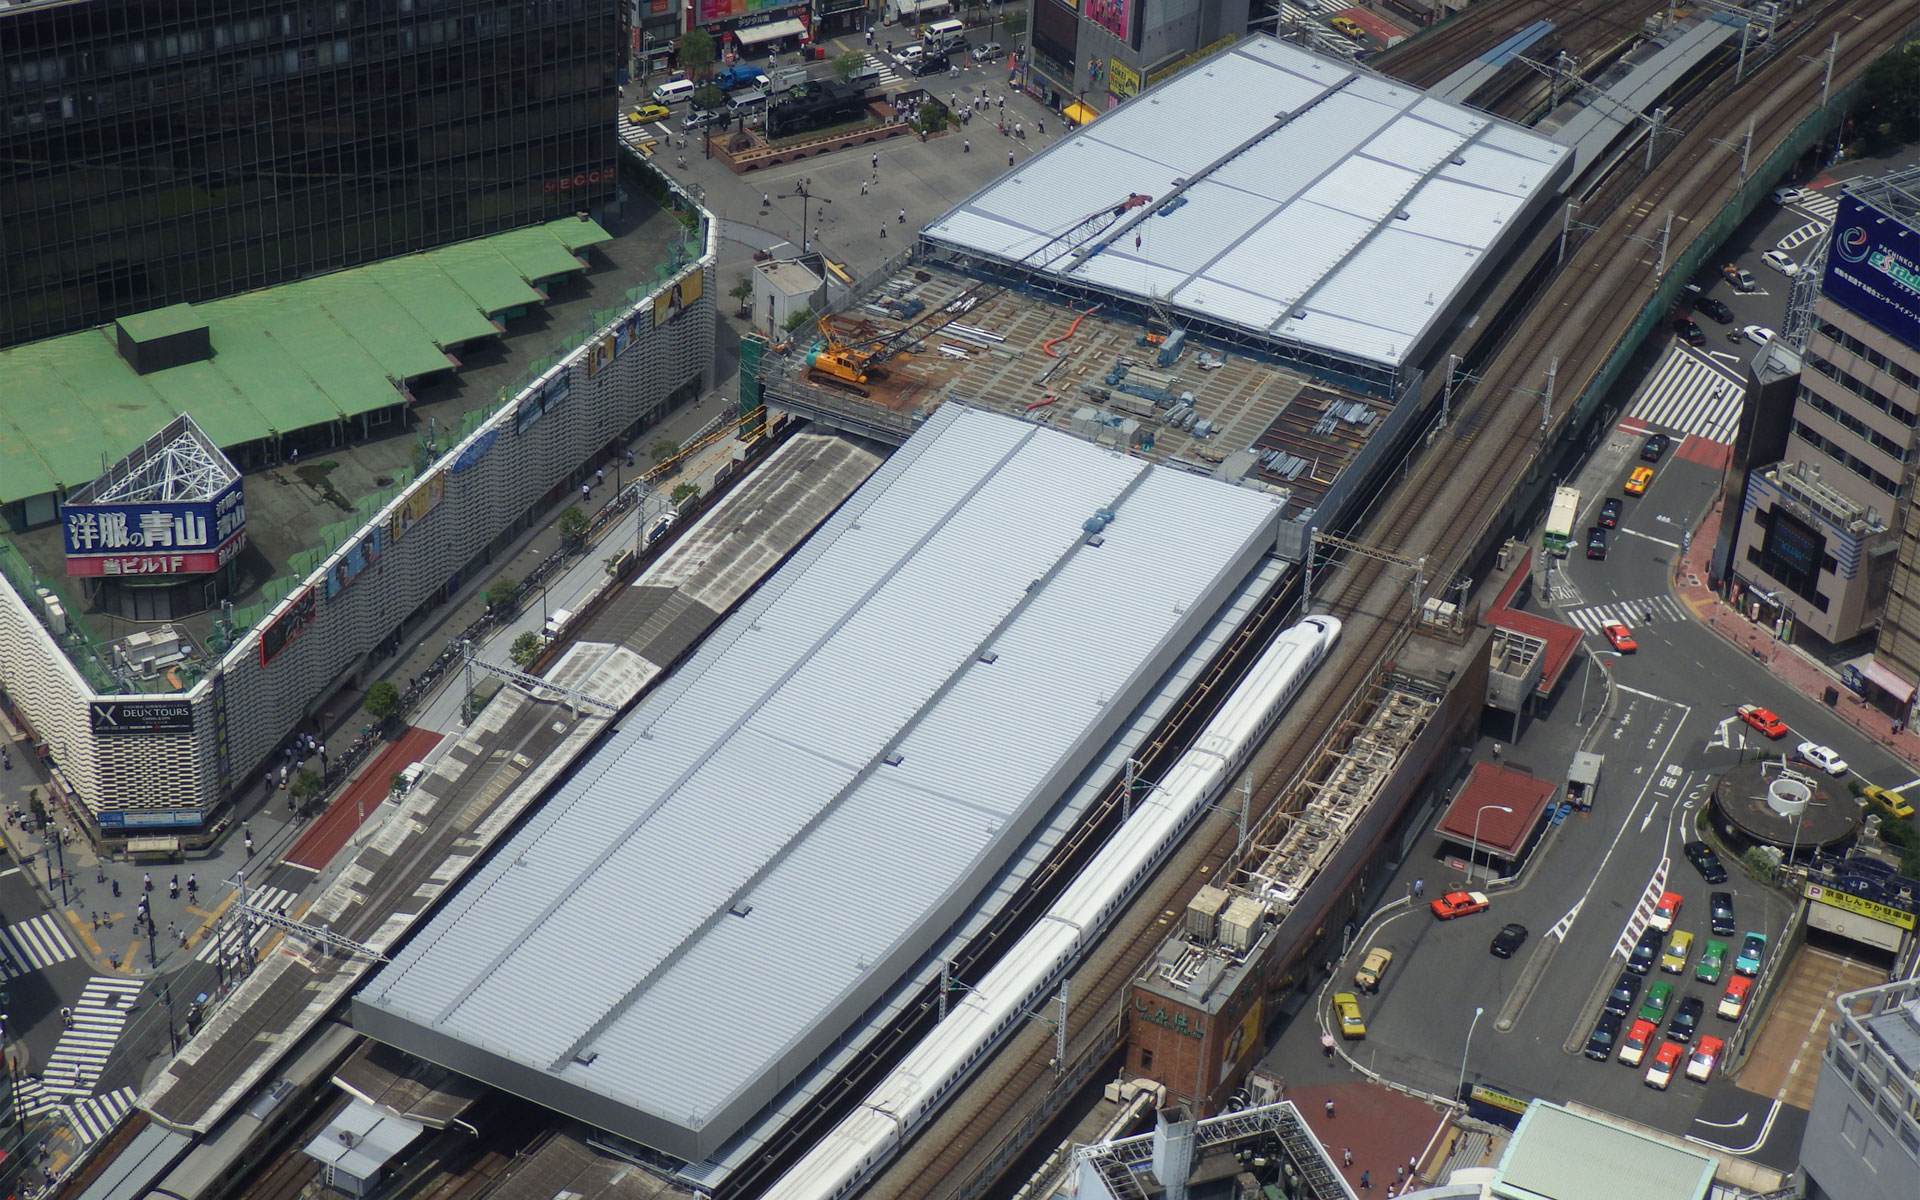 https://www.tomoe-corporation.co.jp/space-structure/works/details/shinbashi_station/images/index/img_main.jpg